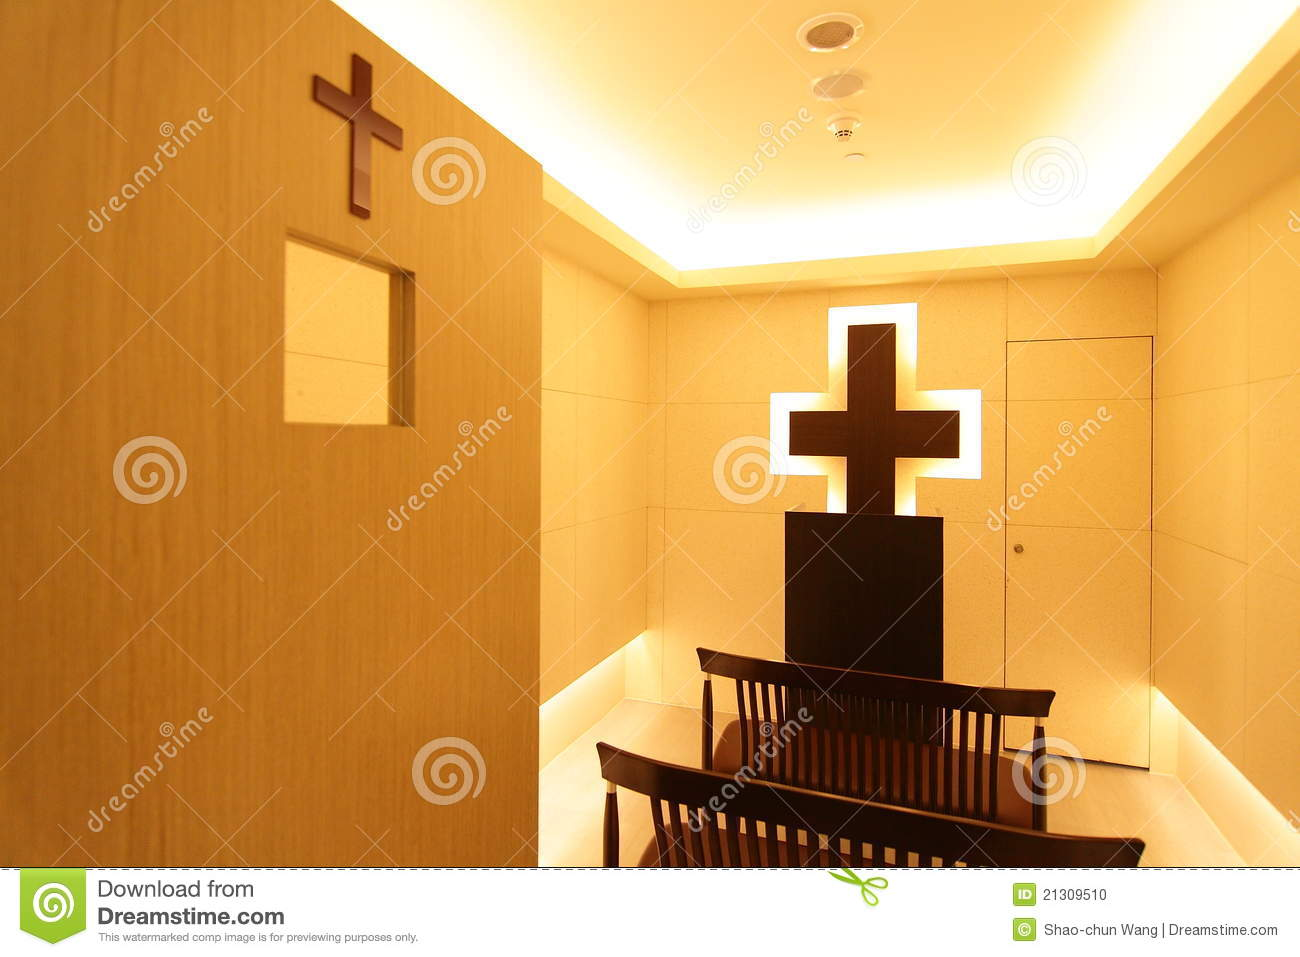 A Christian Prayer Room Stock Photo - Image: 21309510